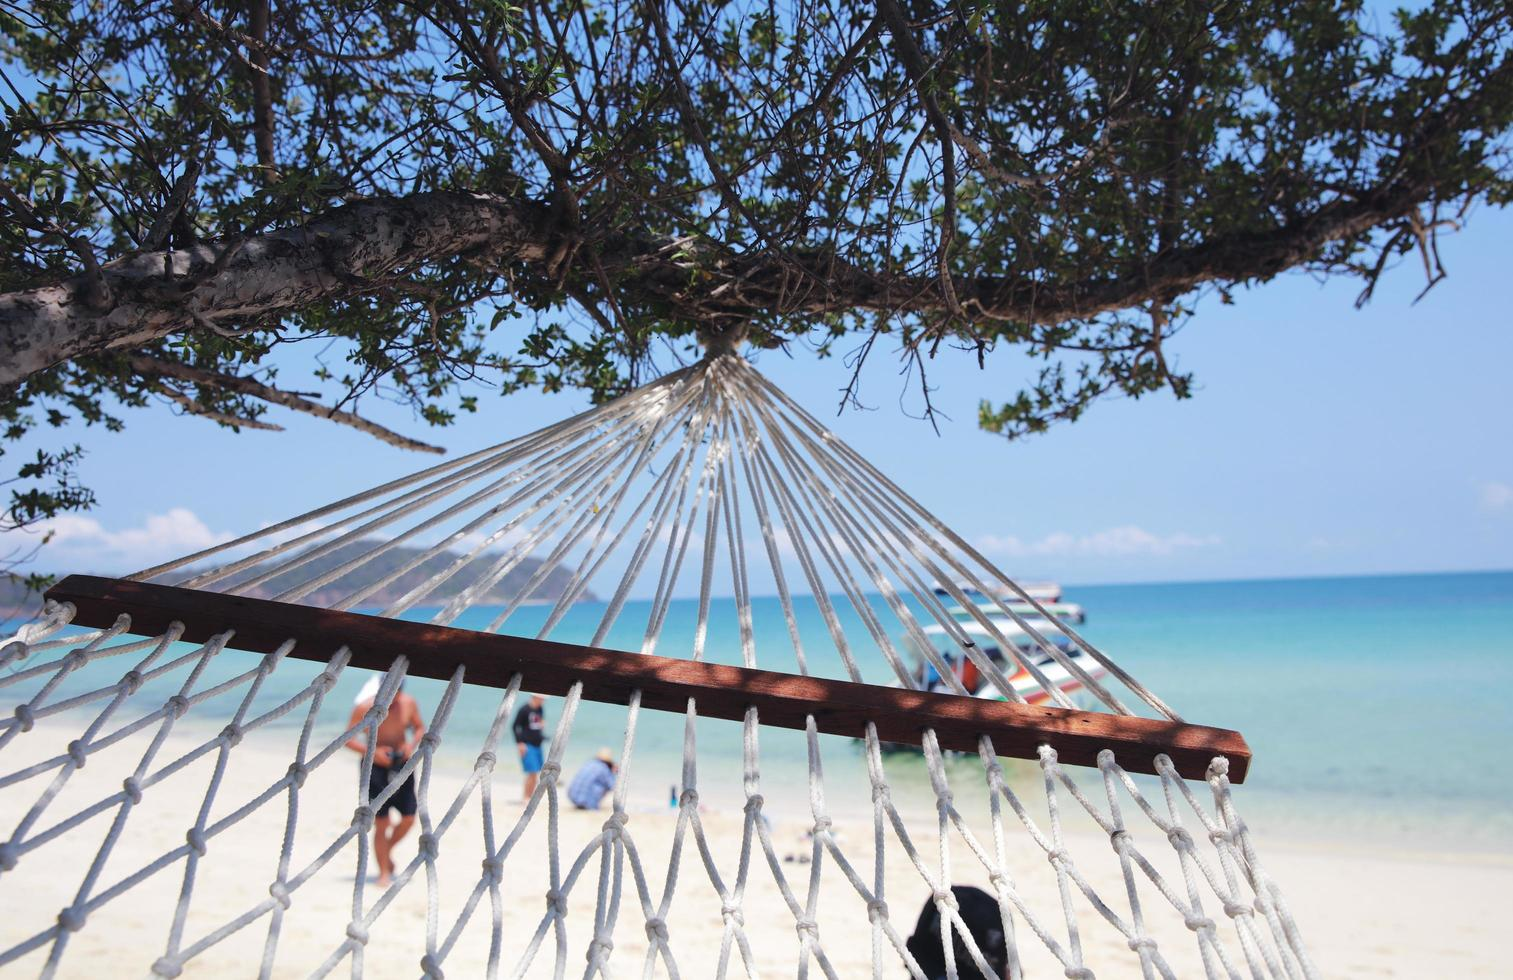 Close up of a swing under a tree at the beach photo